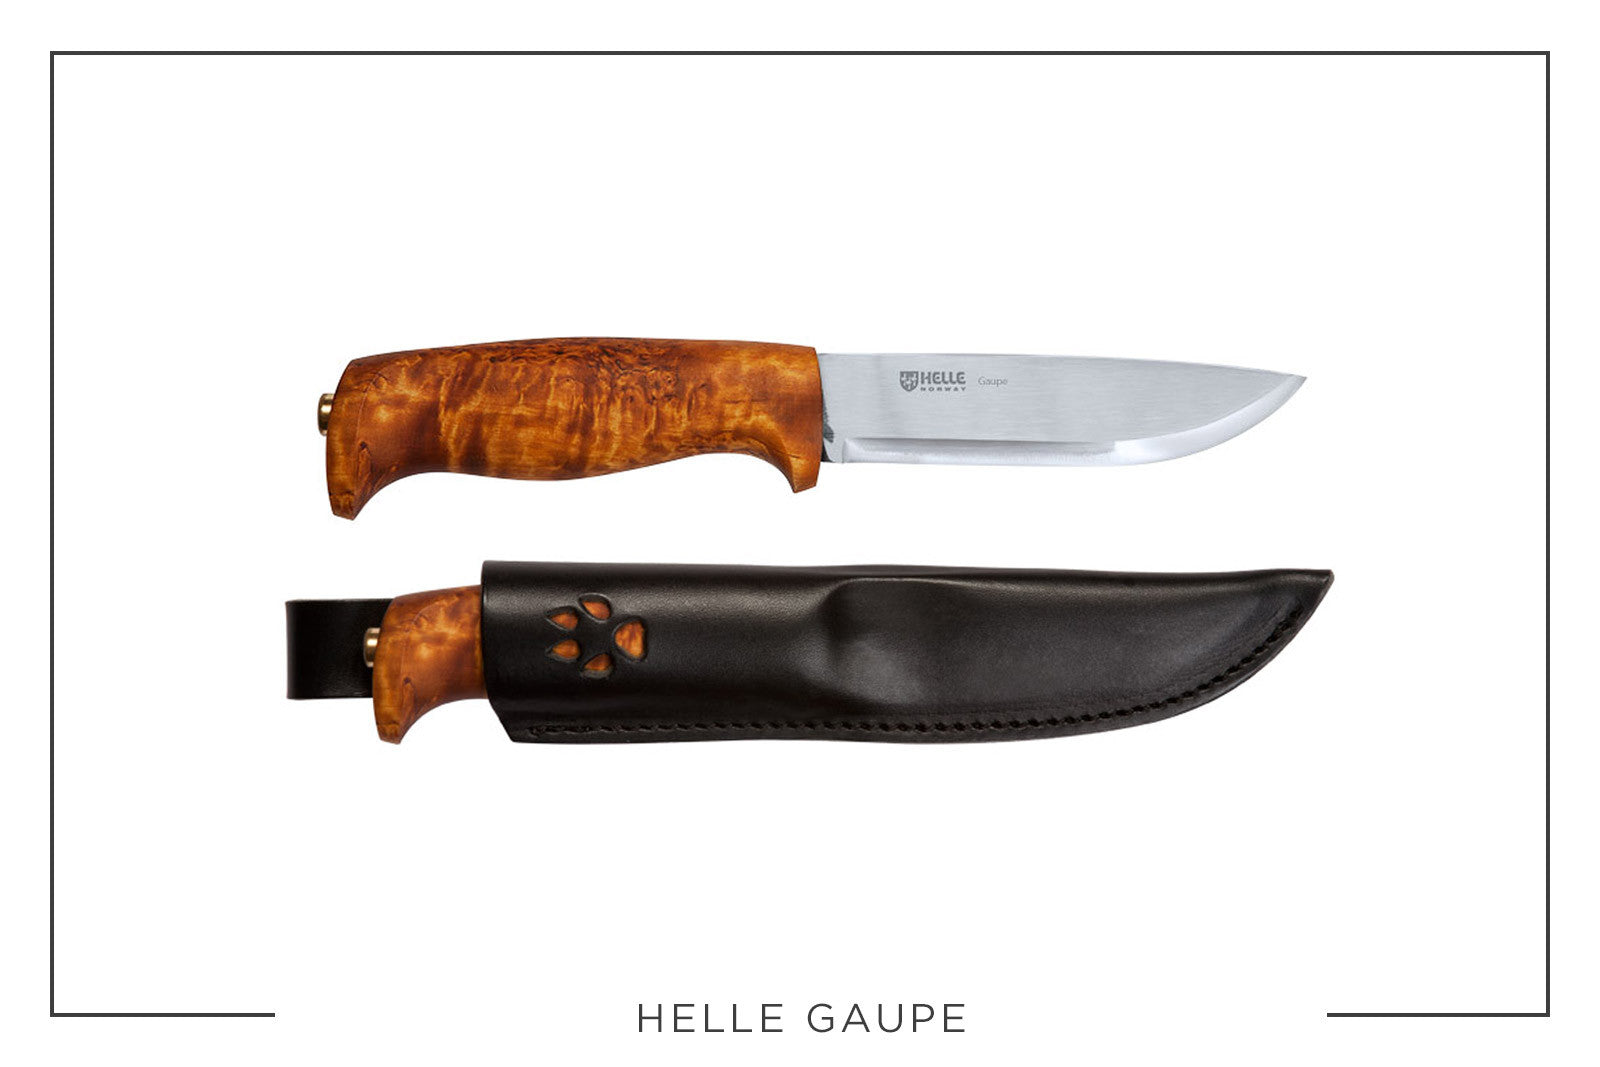 Best Camp Knives Helle Gaupe